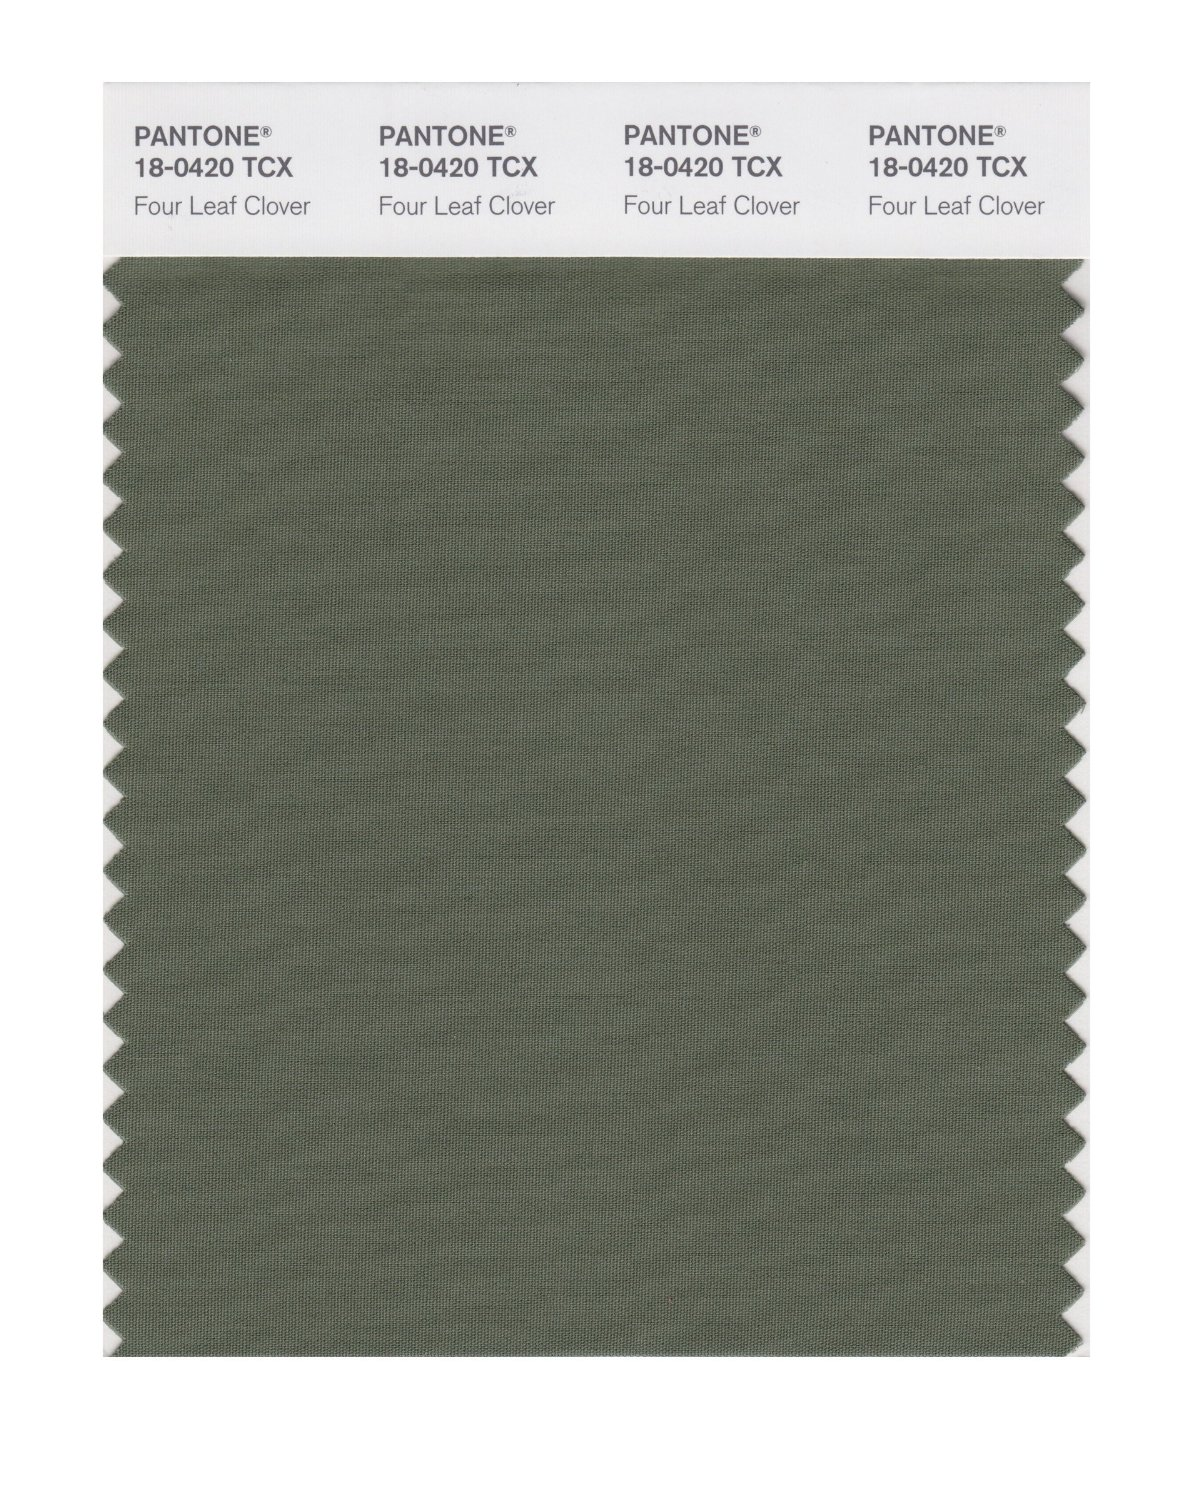 Pantone Smart Swatch 18-0420 Four Leaf Clover